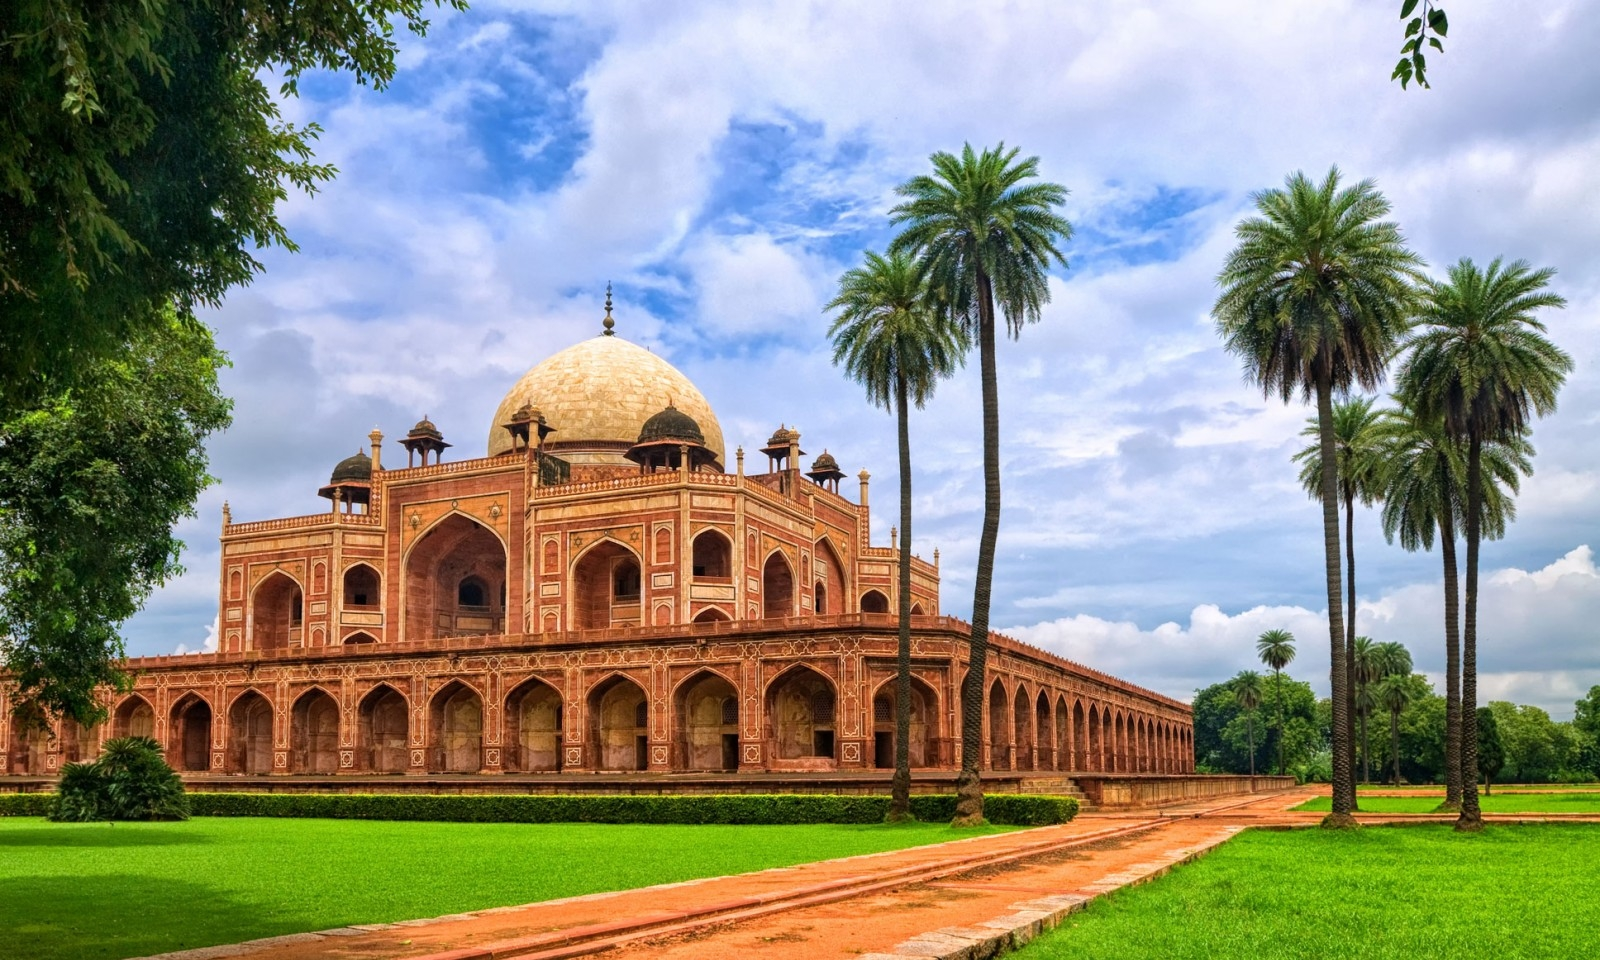 Delhi - Where the old meets the new. Rikshaw rides and the Presidential Palace. Experience the hustle and bustle of the main bazaar in the heart of the city home to 20 million people.